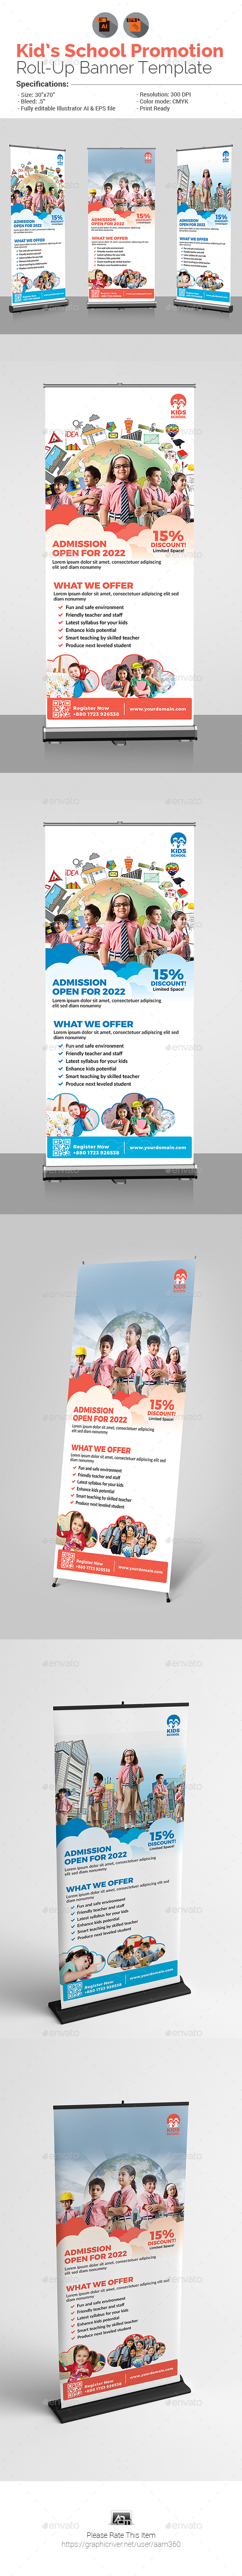 Junior School Promotion Roll-Up Banner - Signage Print Templates